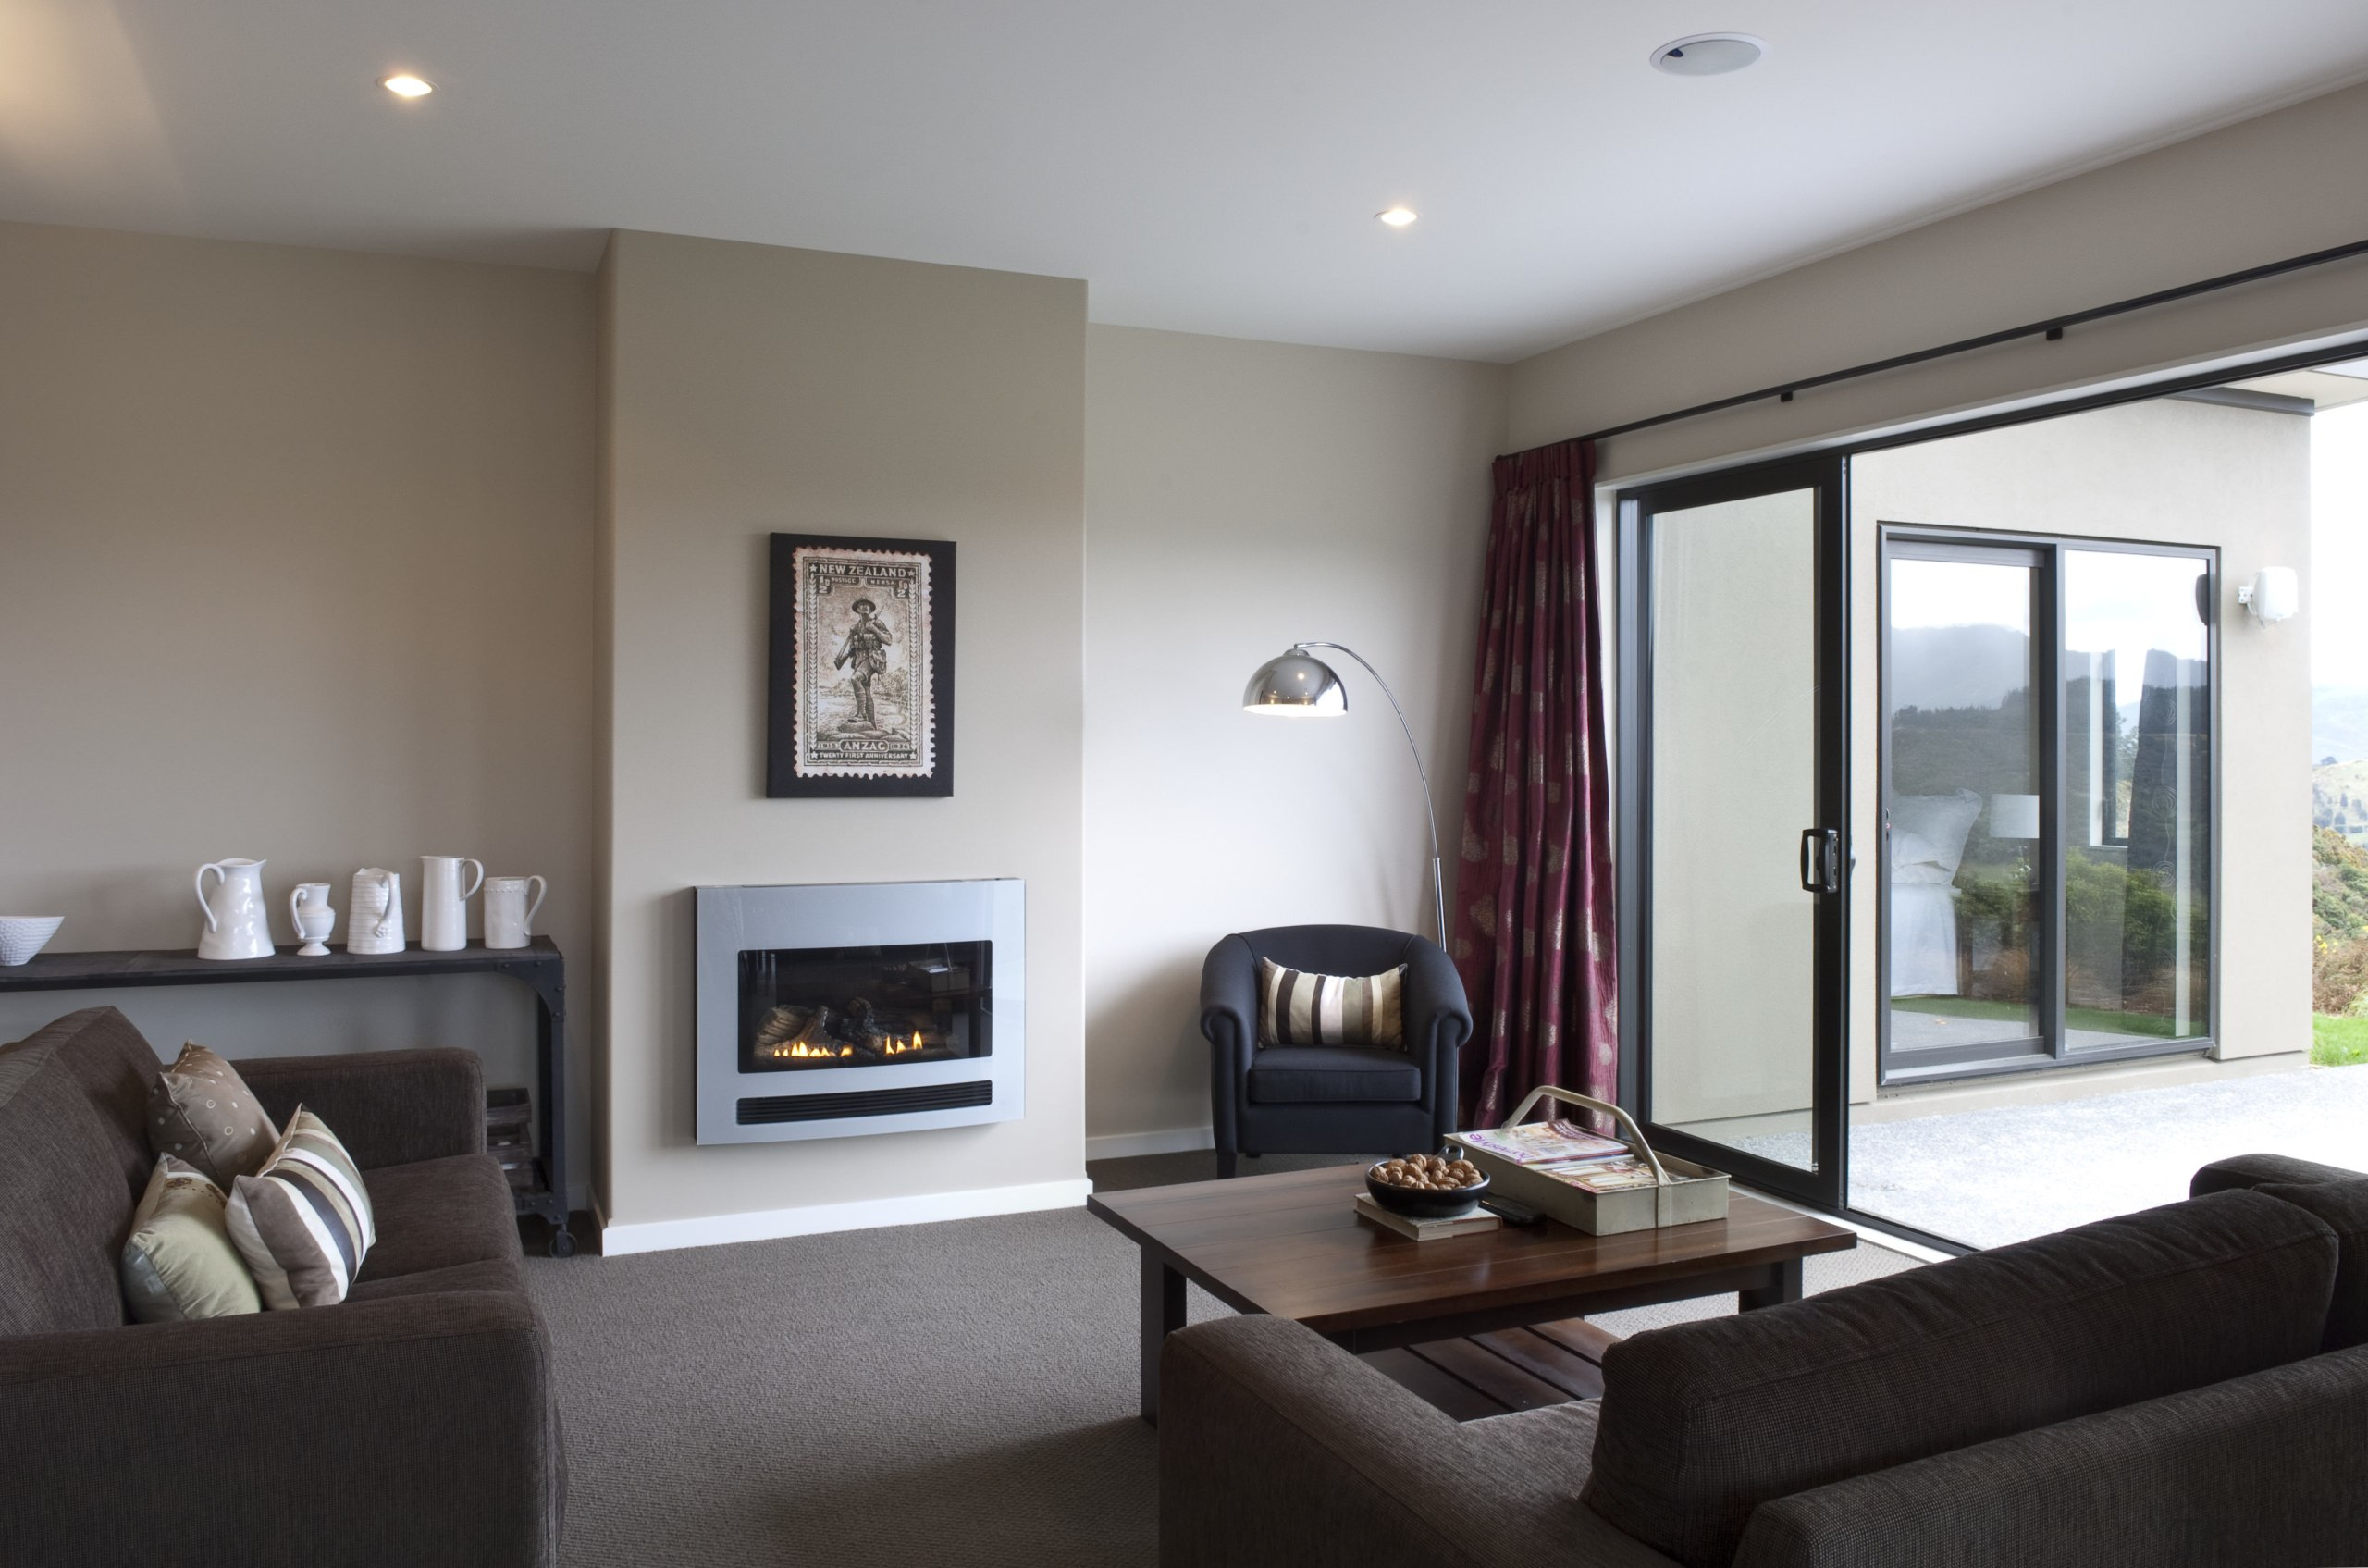 This Upper Hutt Show home was designed and ceiling, floor, flooring, hearth, home, interior design, living room, property, real estate, room, suite, window, gray, white, black